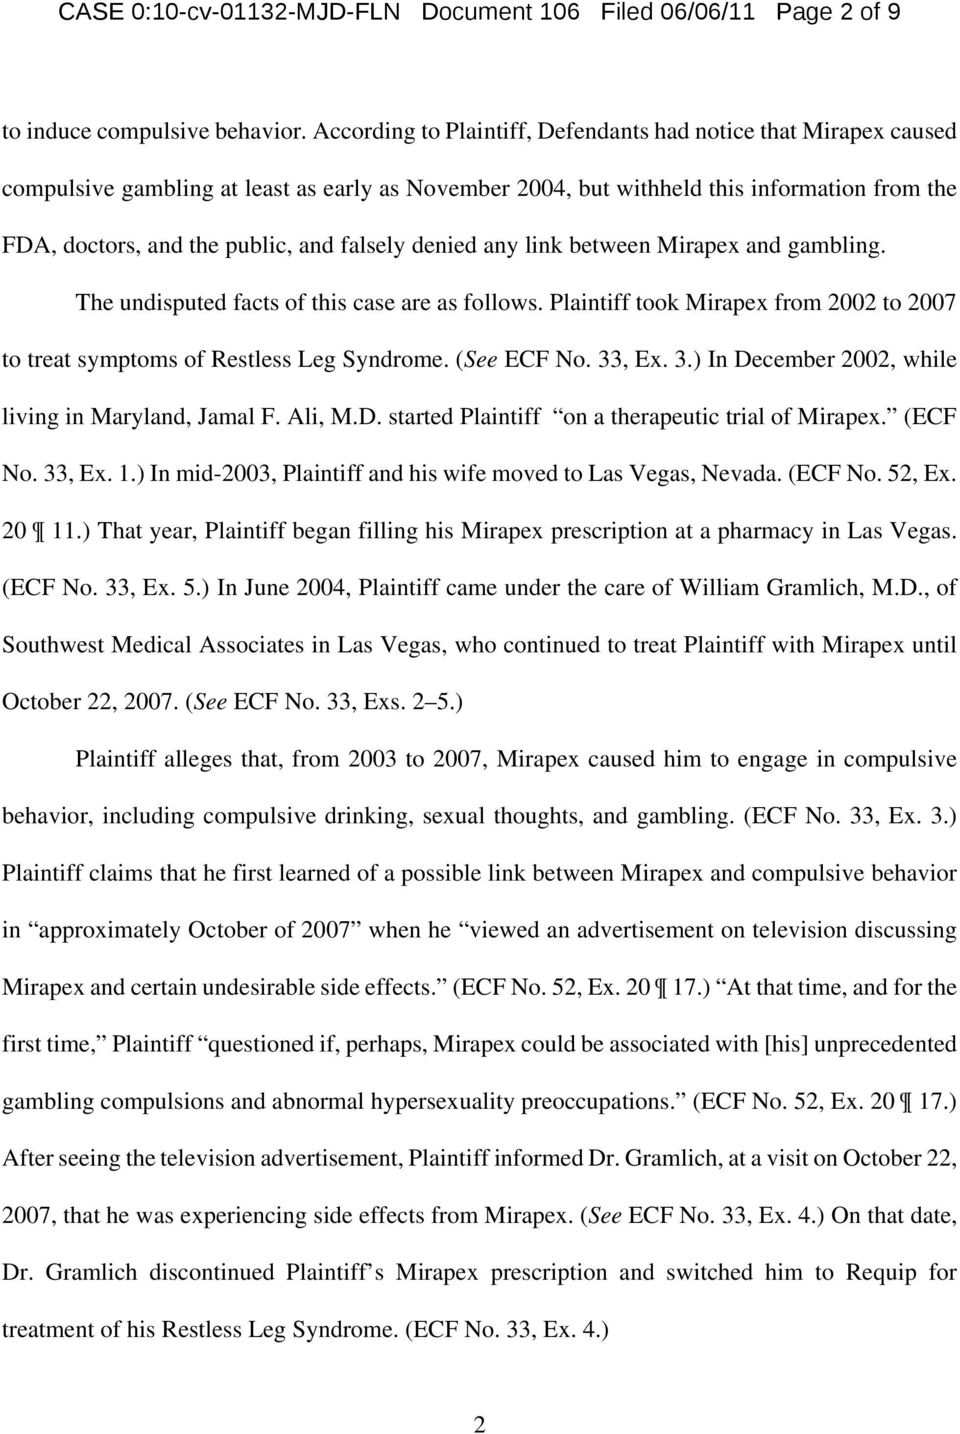 falsely denied any link between Mirapex and gambling. The undisputed facts of this case are as follows. Plaintiff took Mirapex from 2002 to 2007 to treat symptoms of Restless Leg Syndrome.